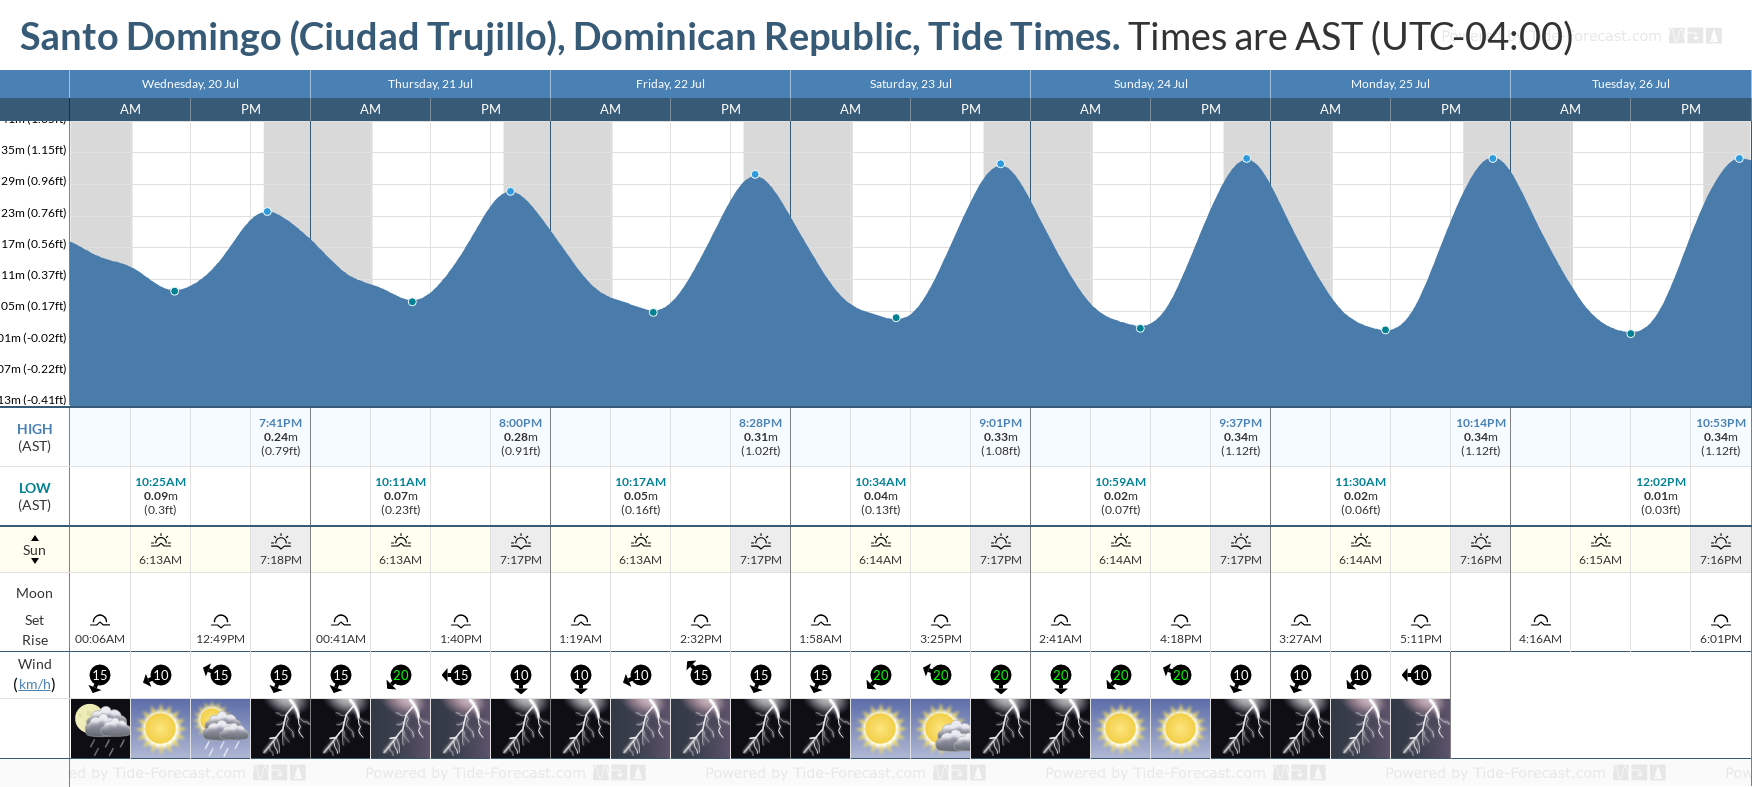 Santo Domingo (Ciudad Trujillo), Dominican Republic Tide Chart including high and low tide tide times for the next 7 days